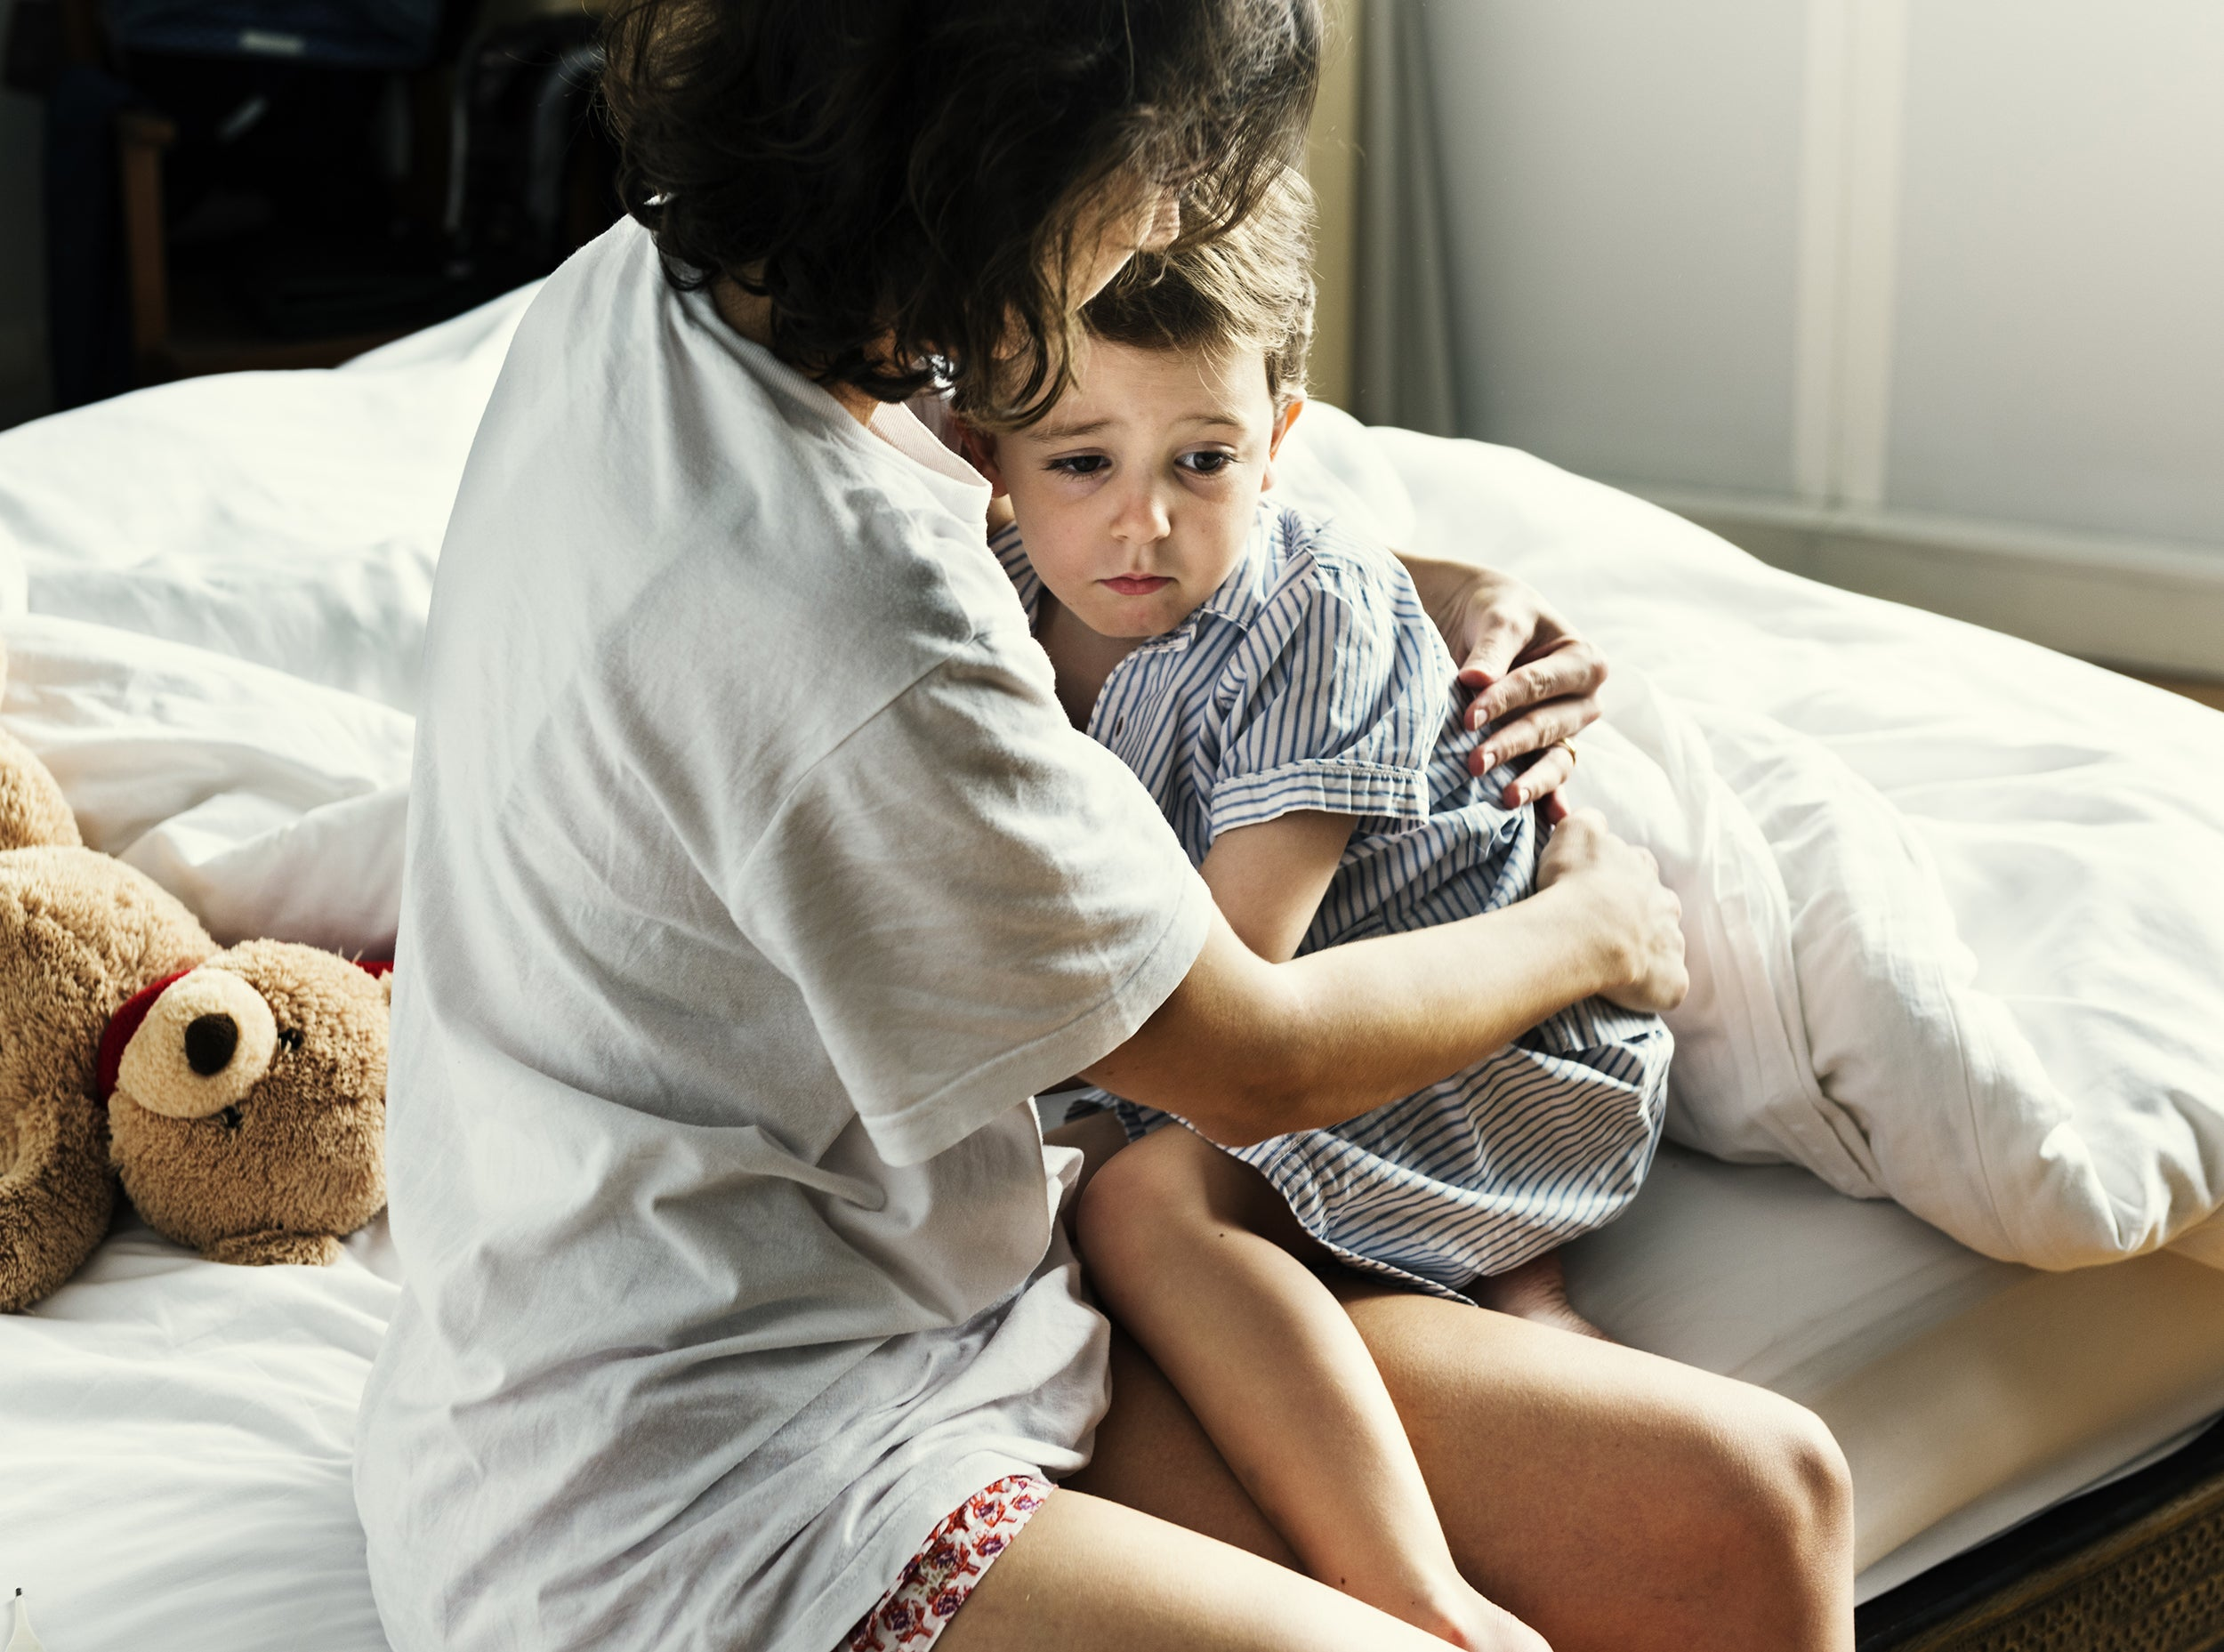 5 Signs of Stress in Children - having nightmares